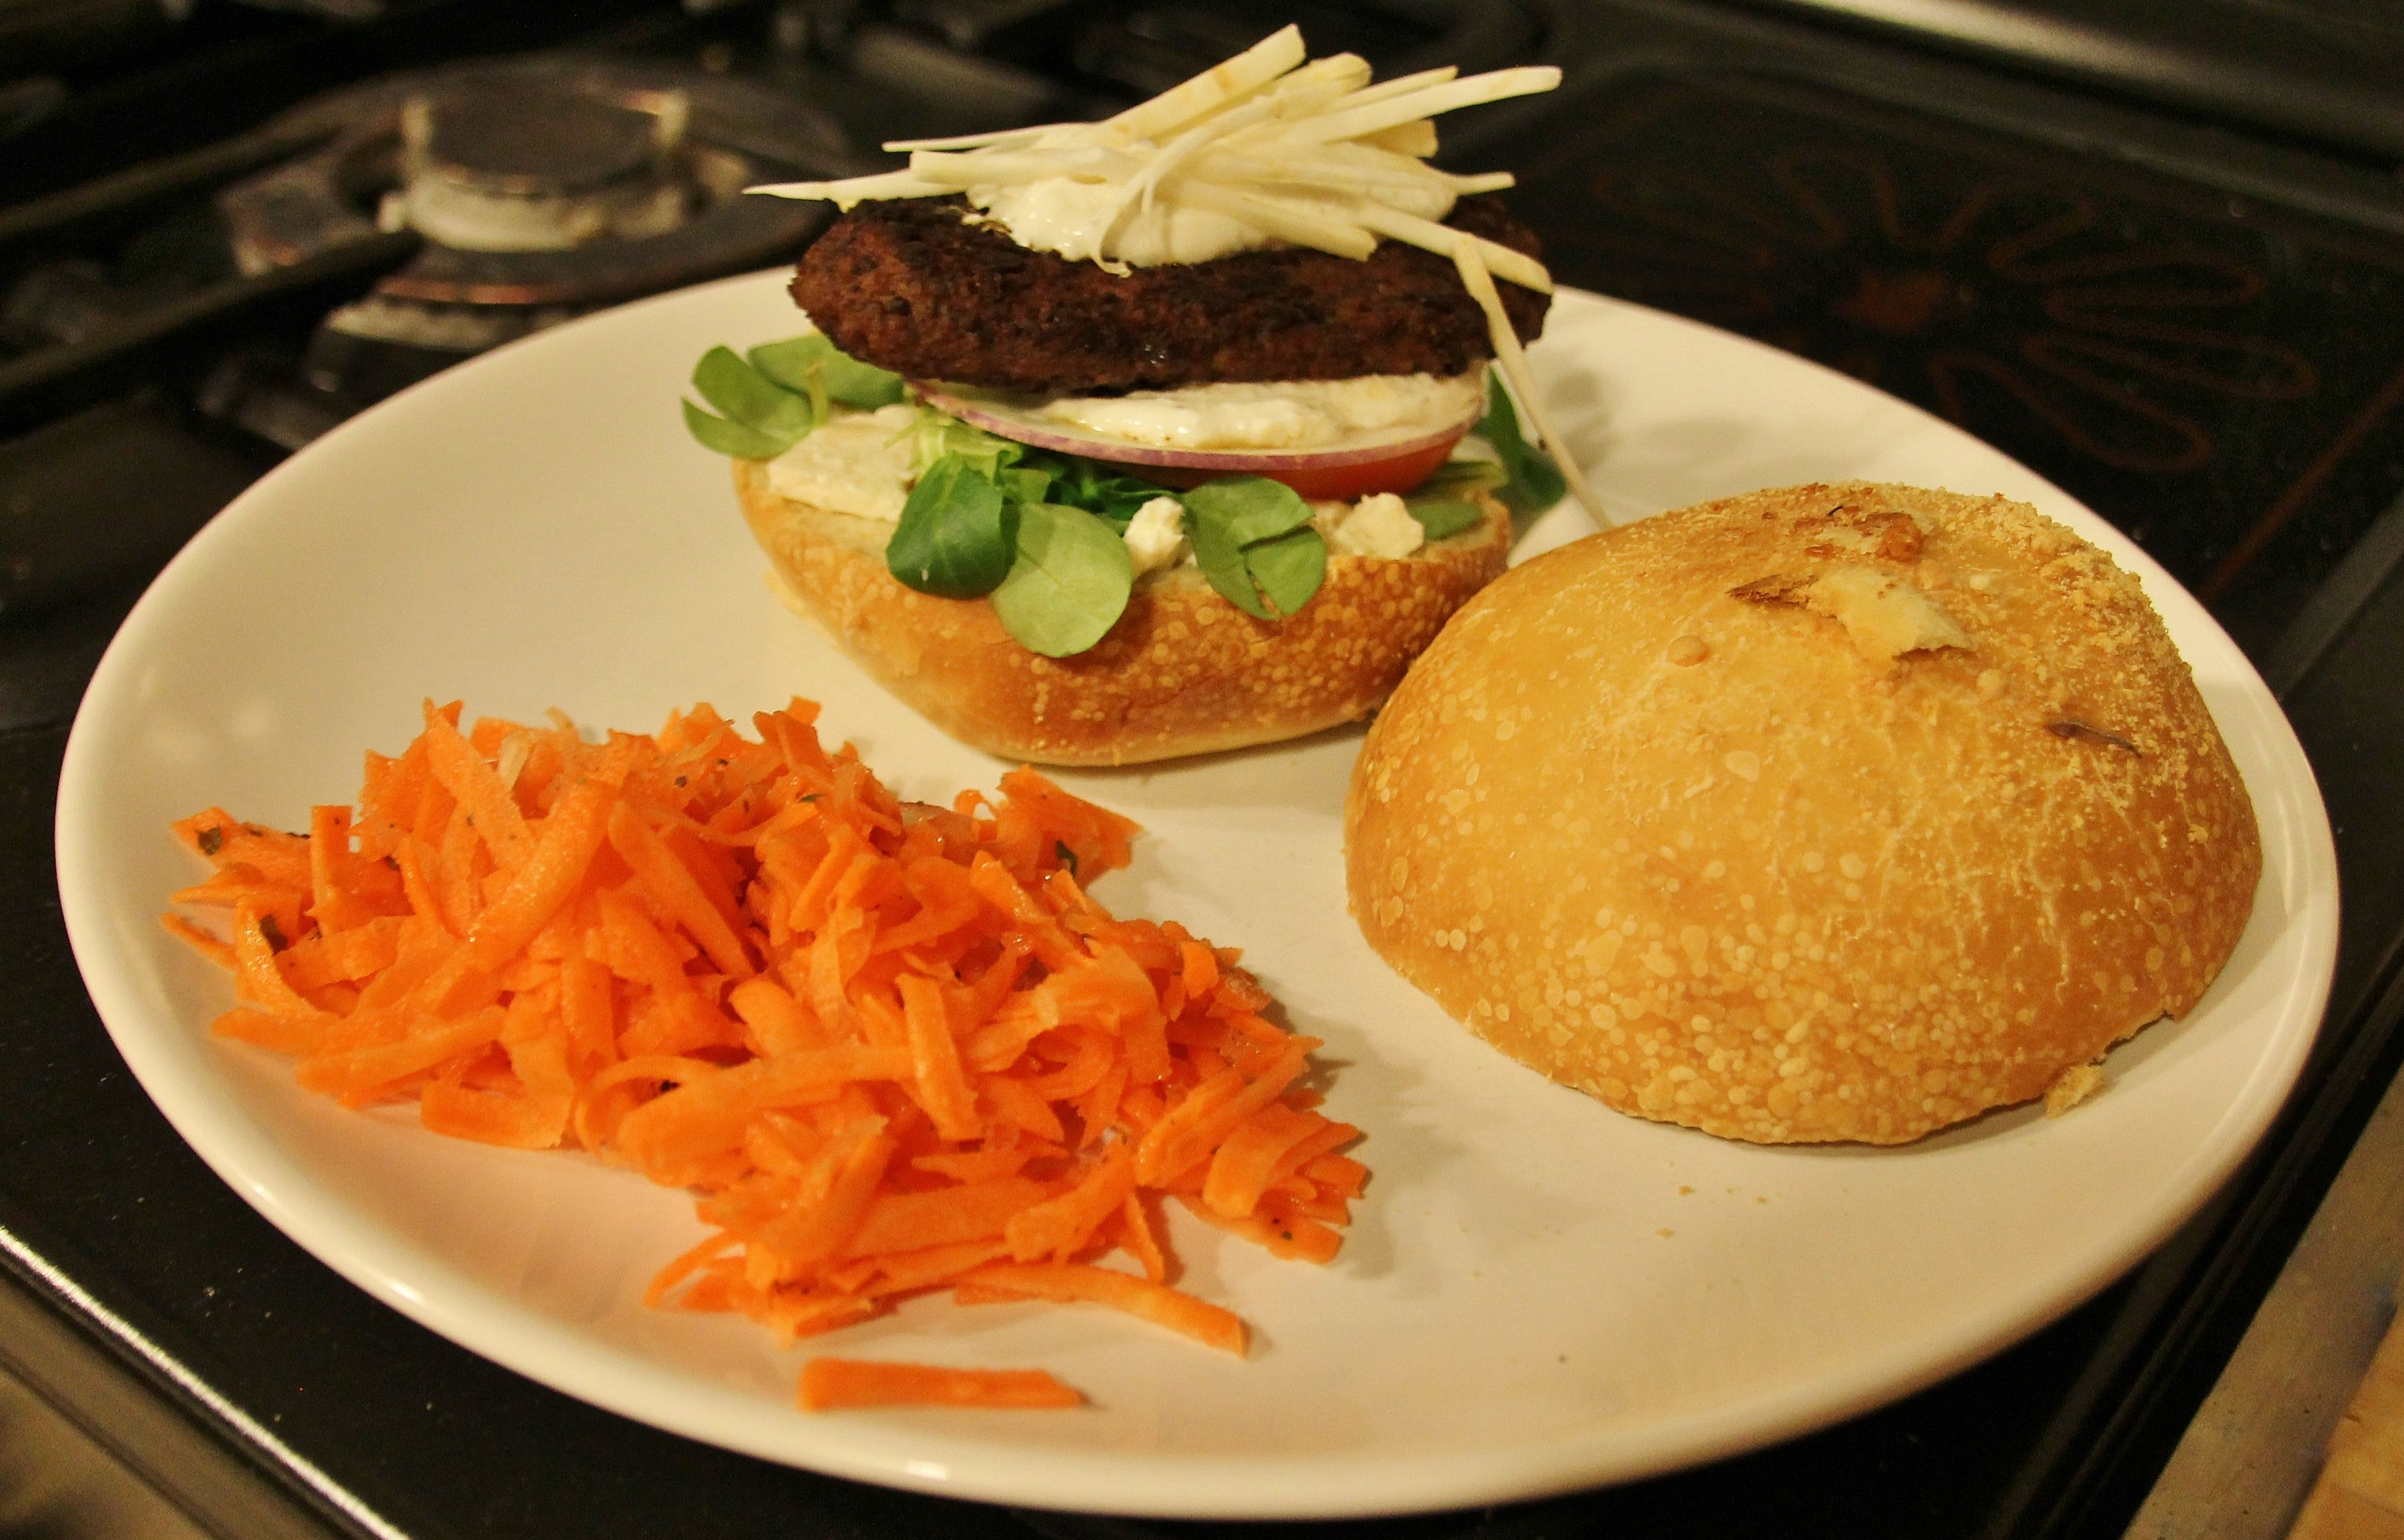 Healthy homemade burger